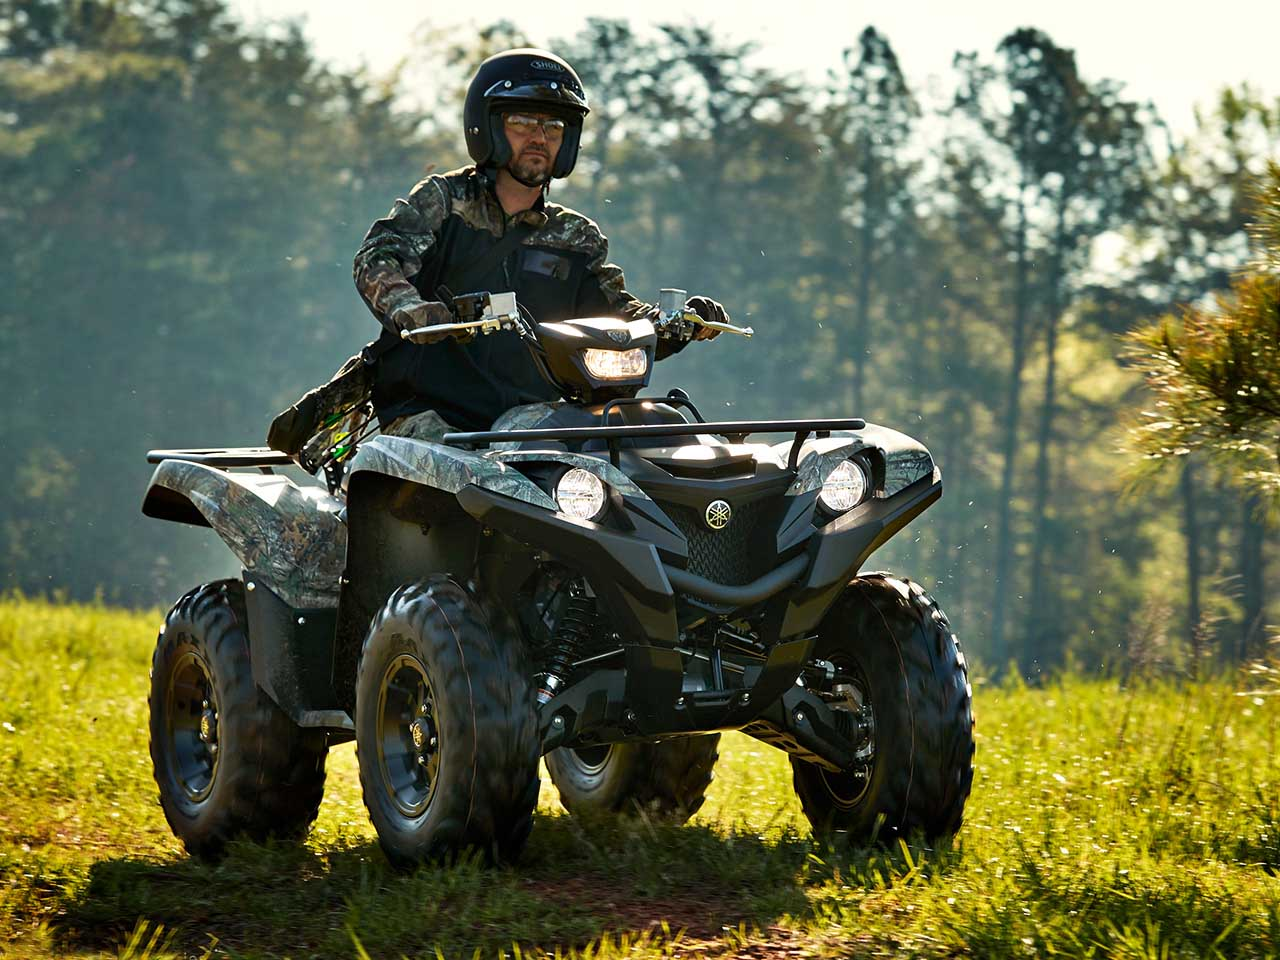 2020 Yamaha Grizzly 700 Camo Gallery 3